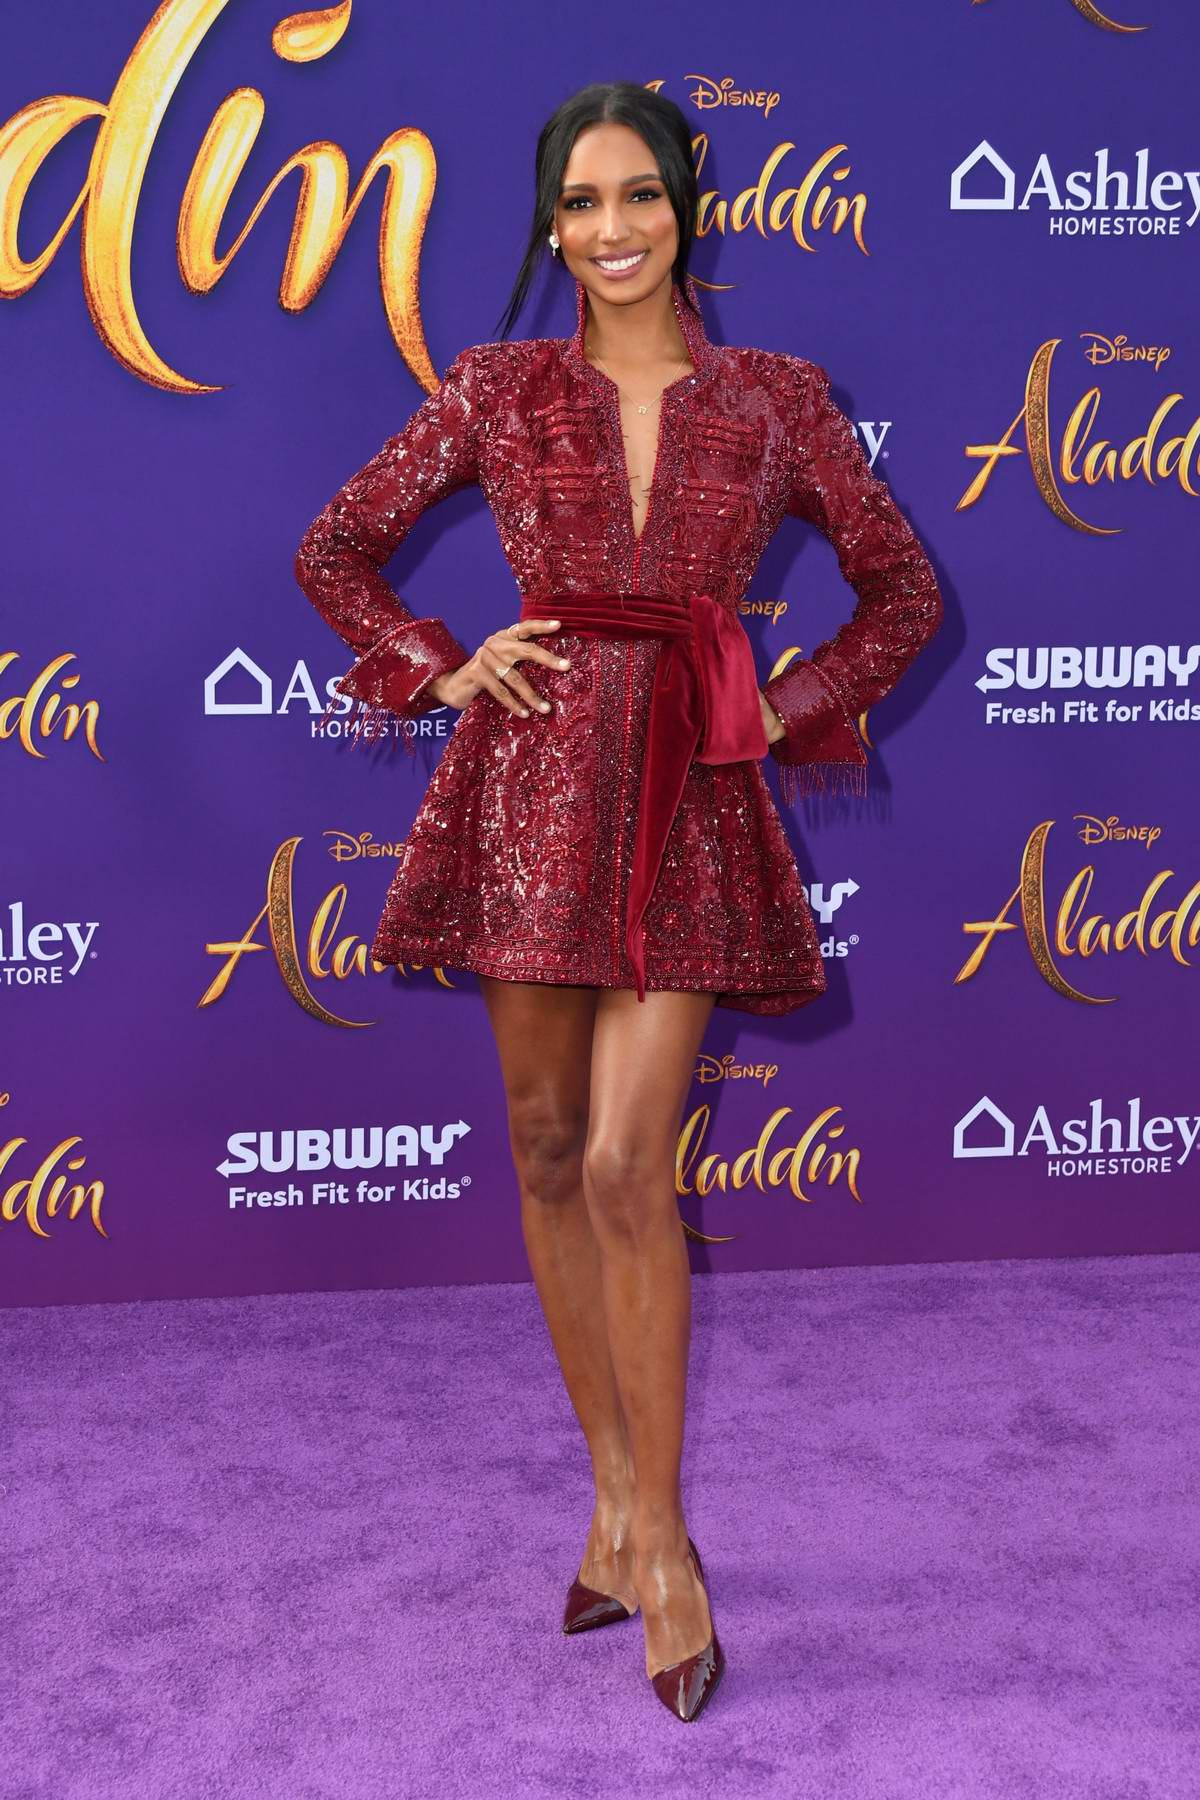 Jasmine Tookes attends the World Premiere of Disney's 'Aladdin' at the El Capitan Theater in Hollywood, California